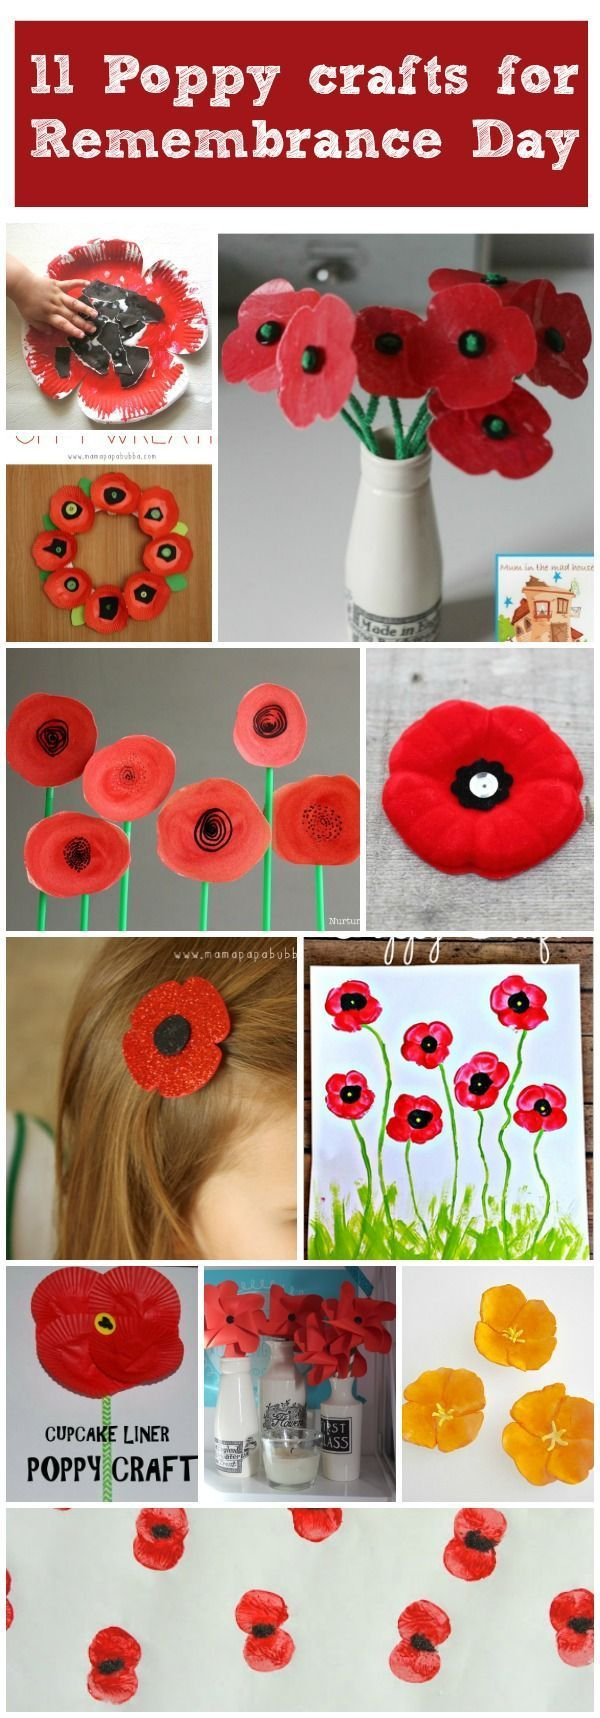 11 more Poppy crafts for Remembrance Day. Remember the fallen with these fab kids poppy craft, which are perfect for remembrance day, memorial day and Armistice day.